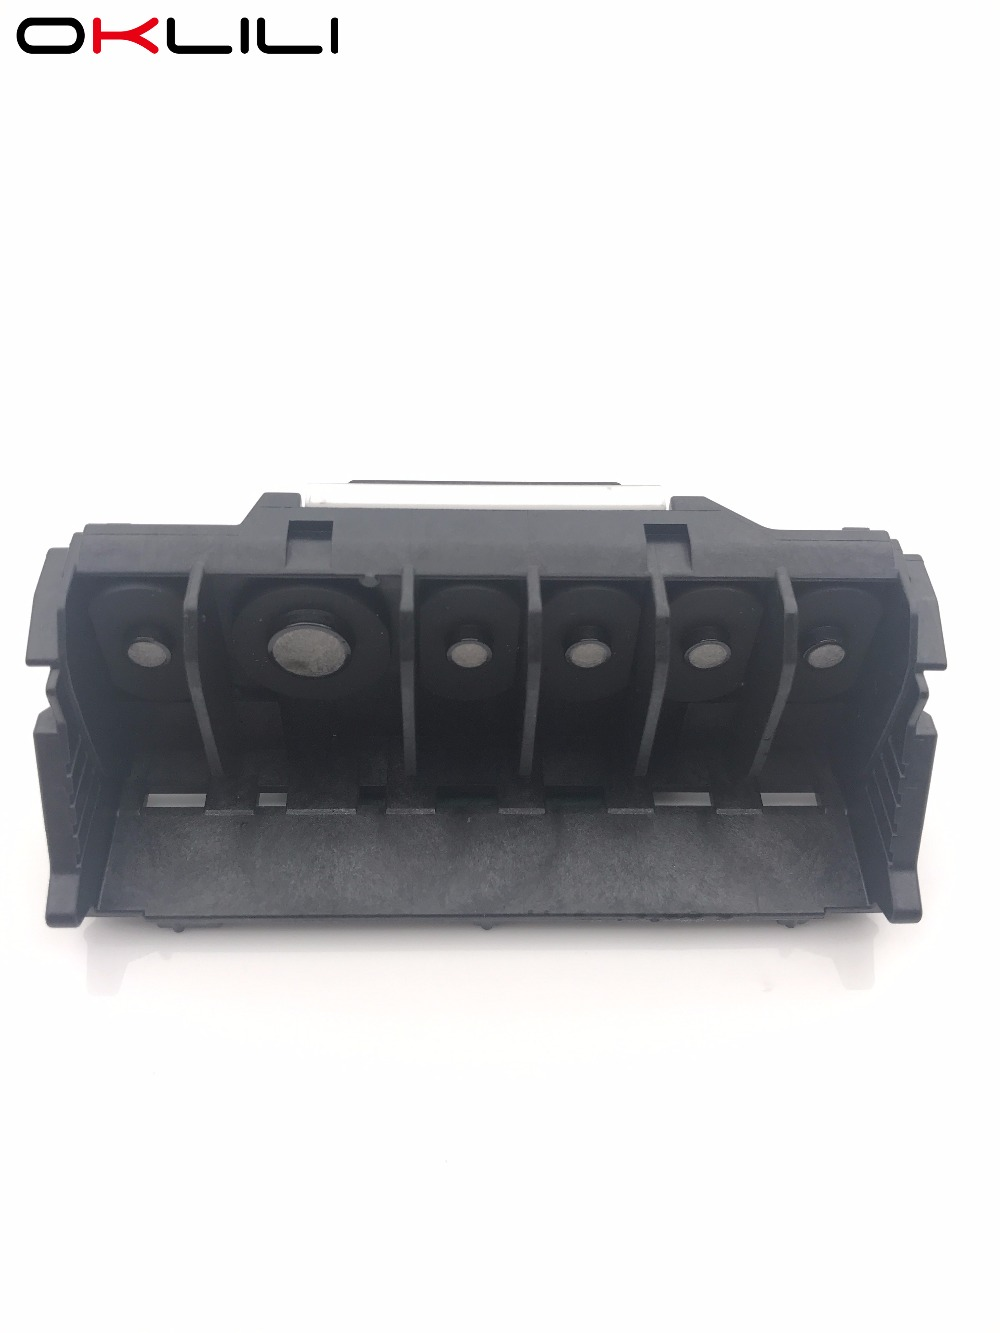 QY6-0090 QY6-0090-000 Printhead Print Head Printer Head for Canon PIXMA TS8020 TS9020 TS8040 TS8050 TS8070 TS8080 TS9050 TS9080 oklili original qy6 0045 qy6 0045 000 printhead print head printer head for canon i550 pixus 550i